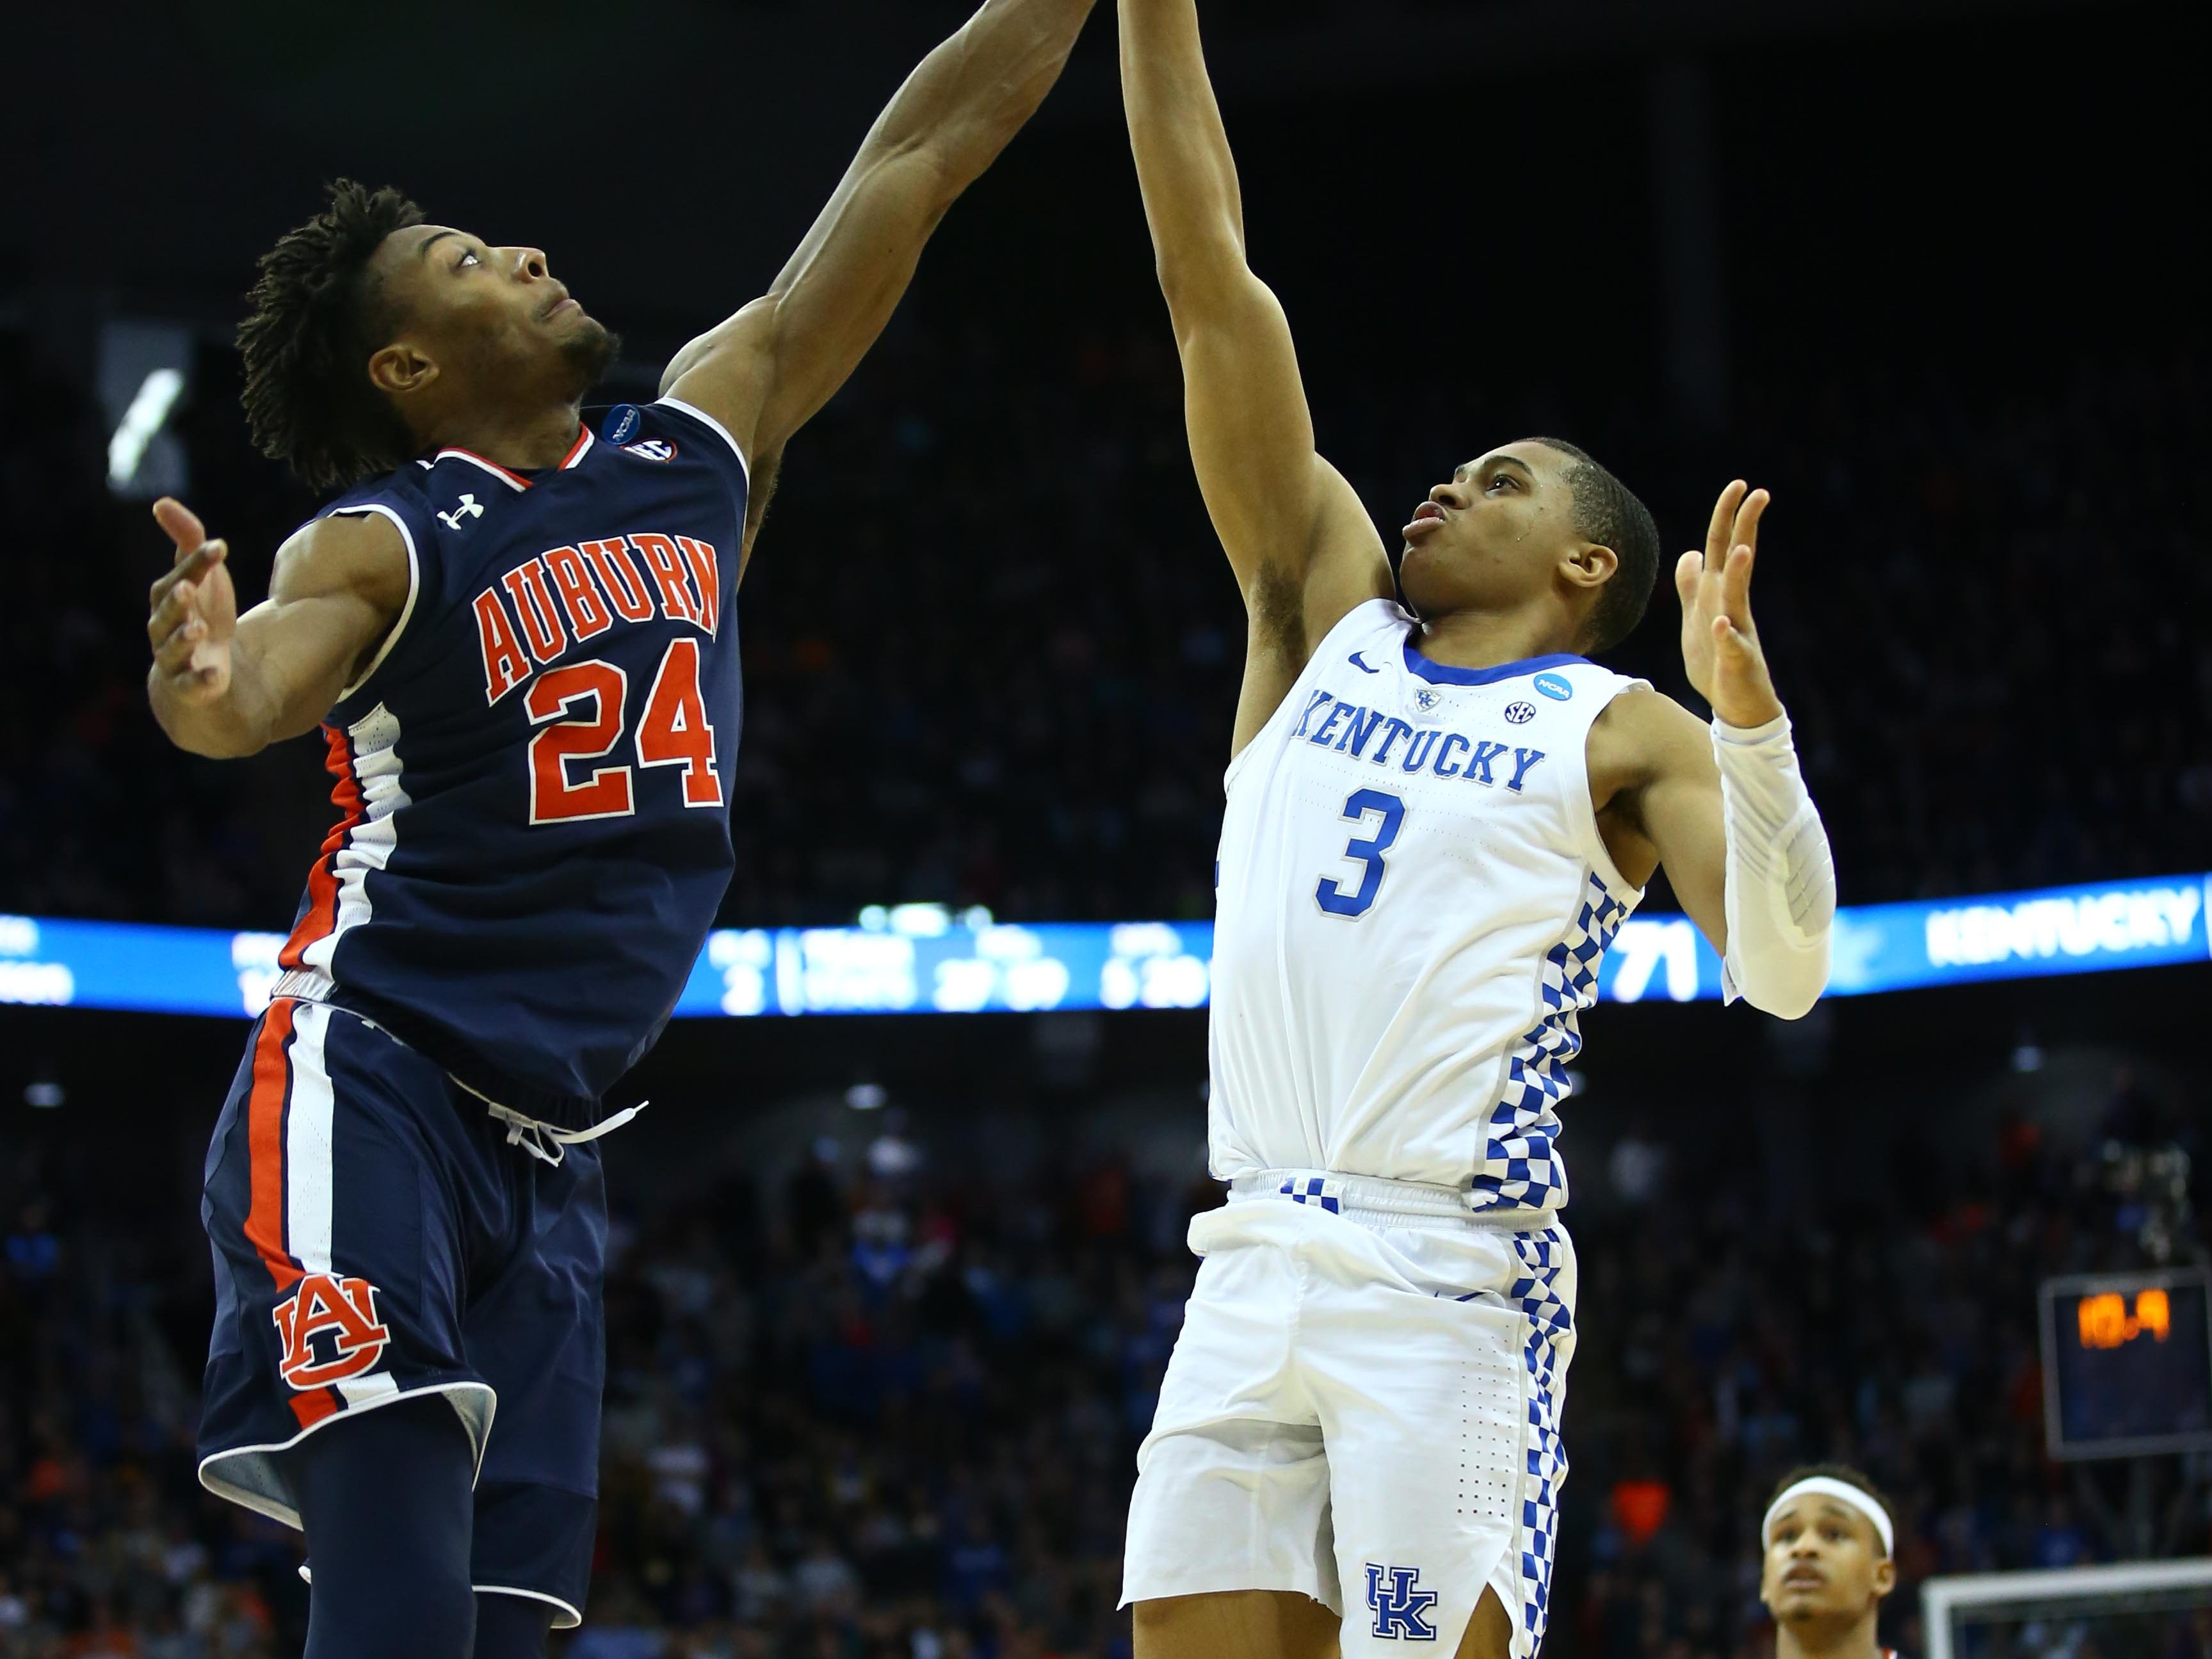 Mar 31, 2019; Kansas City, MO, United States; Auburn Tigers forward Anfernee McLemore (24) blocks the shot of Kentucky Wildcats guard Keldon Johnson (3) during overtime in the championship game of the midwest regional of the 2019 NCAA Tournament at Sprint Center. Mandatory Credit: Jay Biggerstaff-USA TODAY Sports